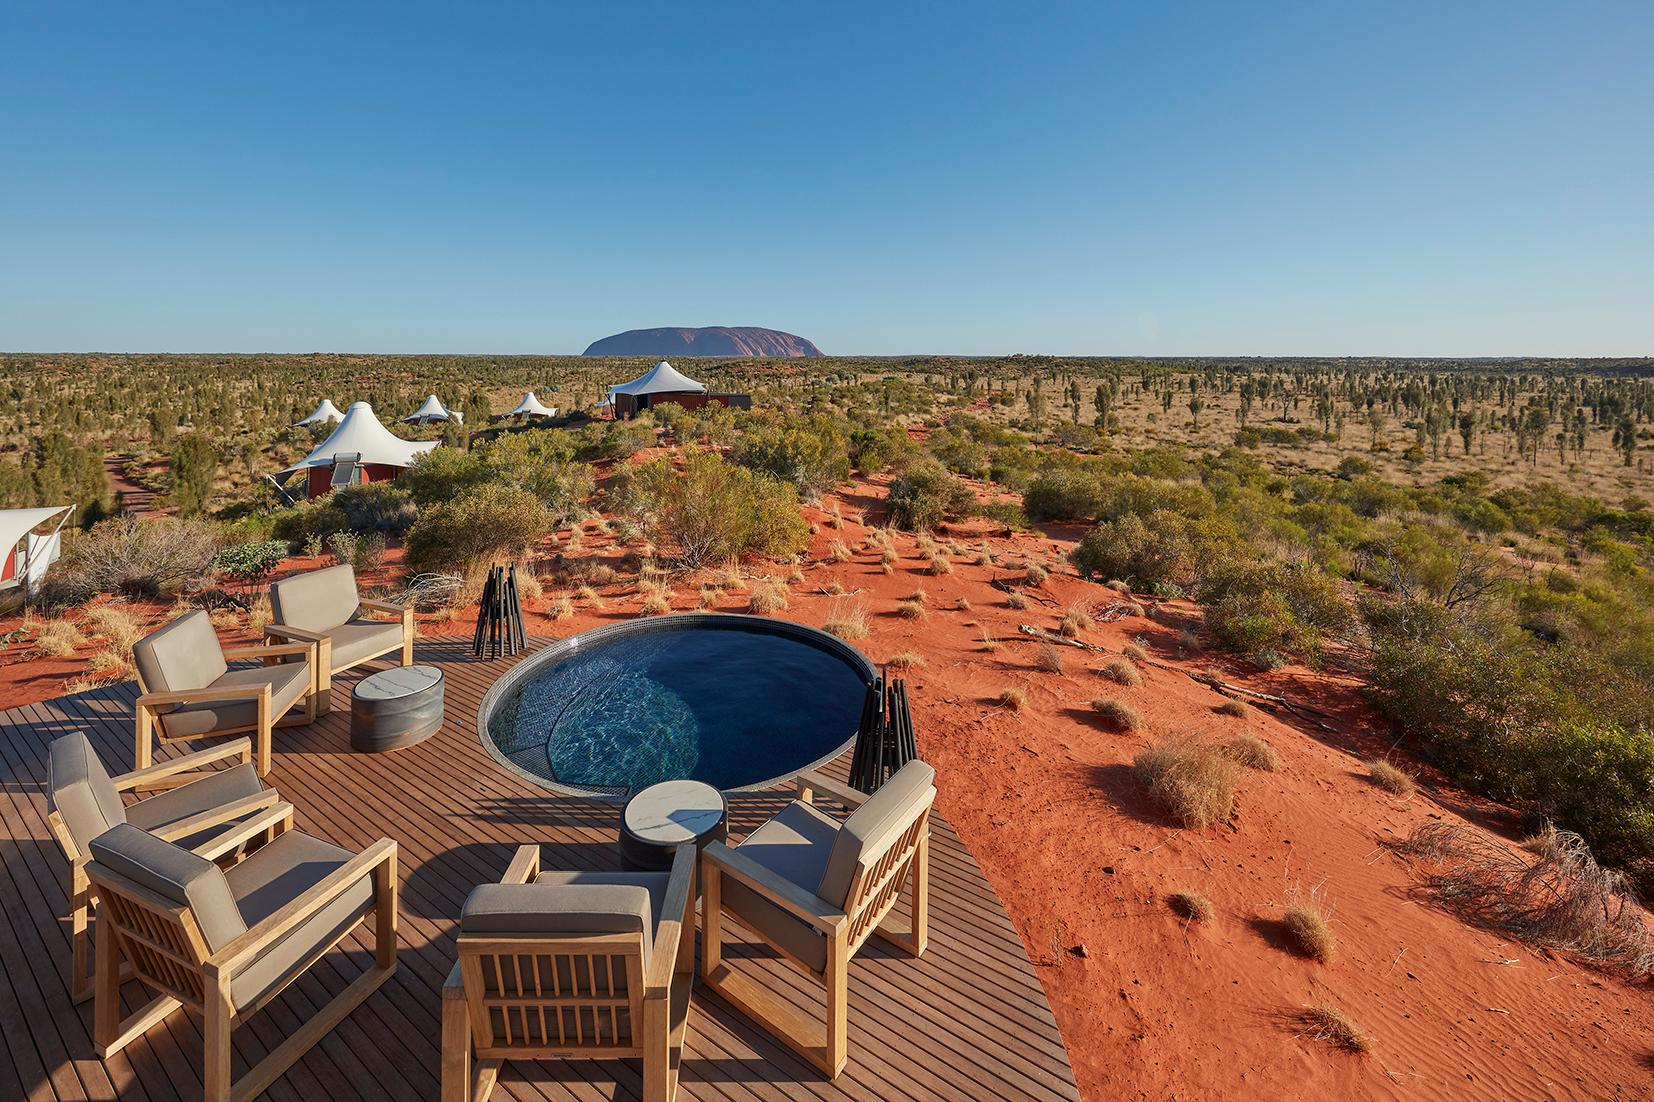 Dune Top plunge pool